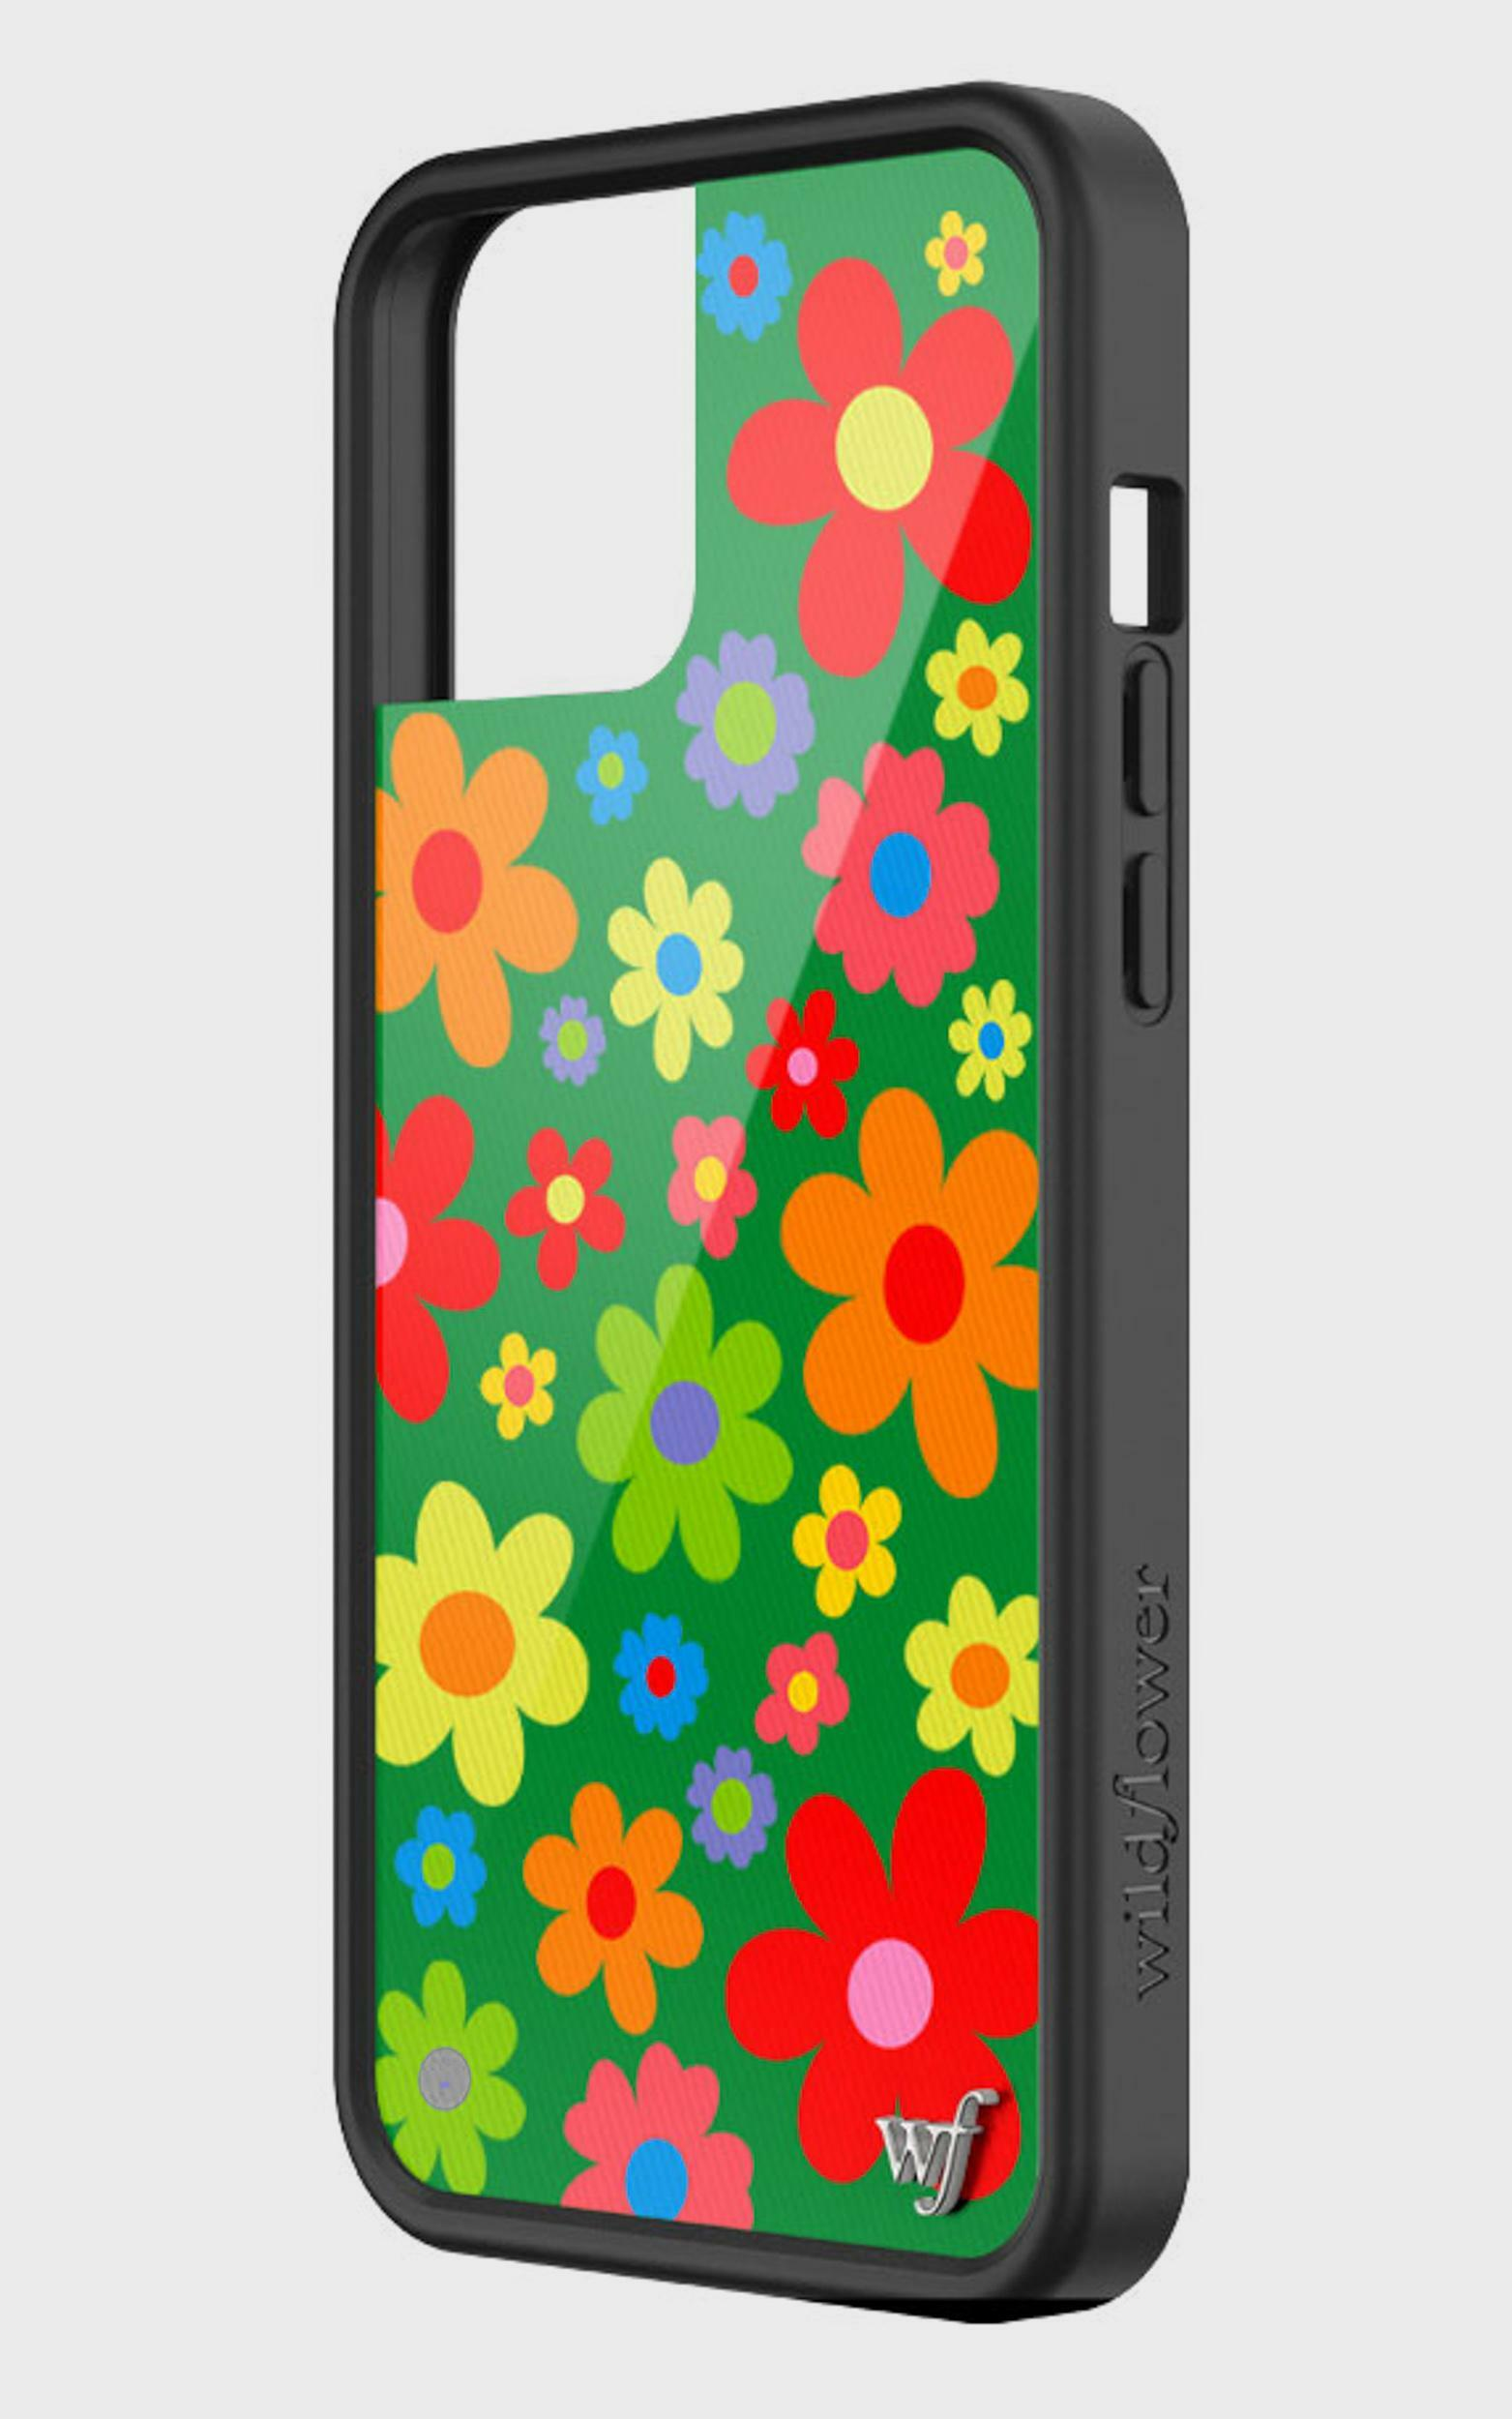 Wildflower - Iphone Case in Bloom - XR, MLT1, hi-res image number null